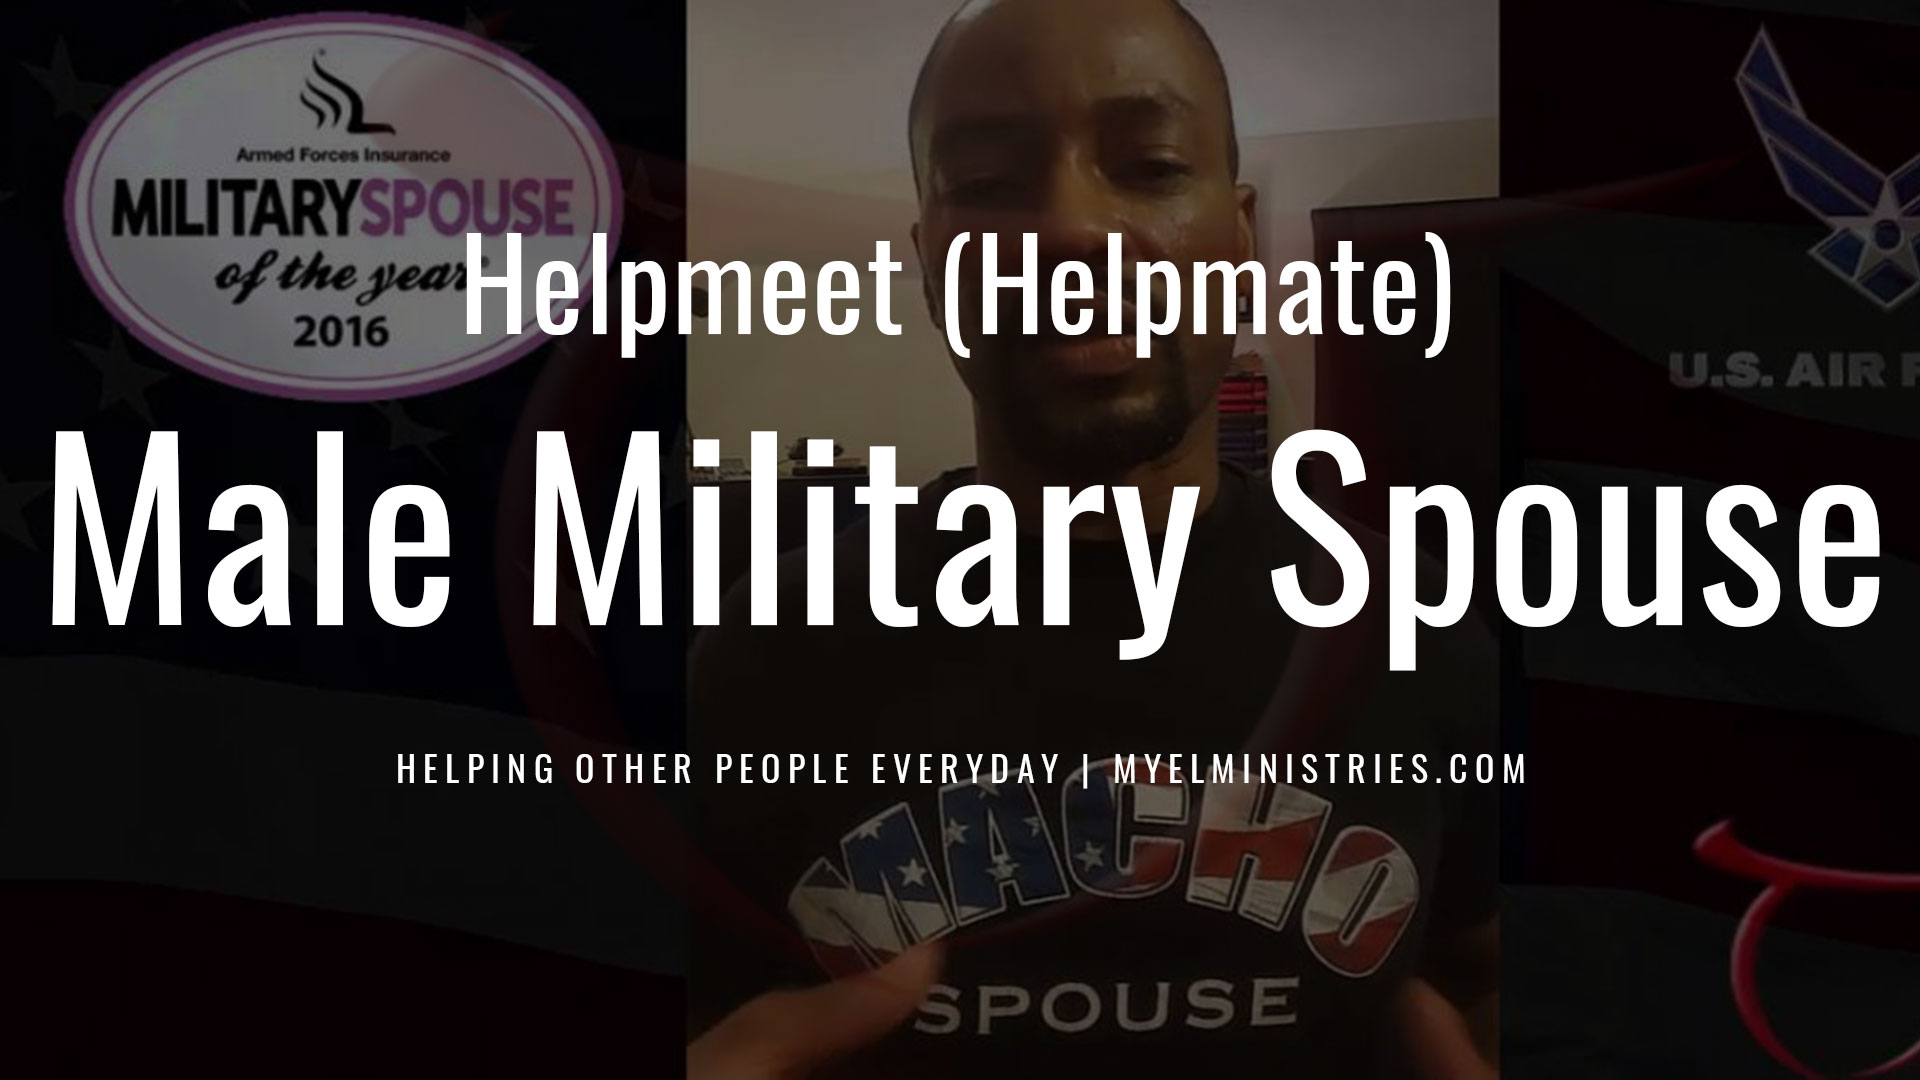 image for Male Military Spouse